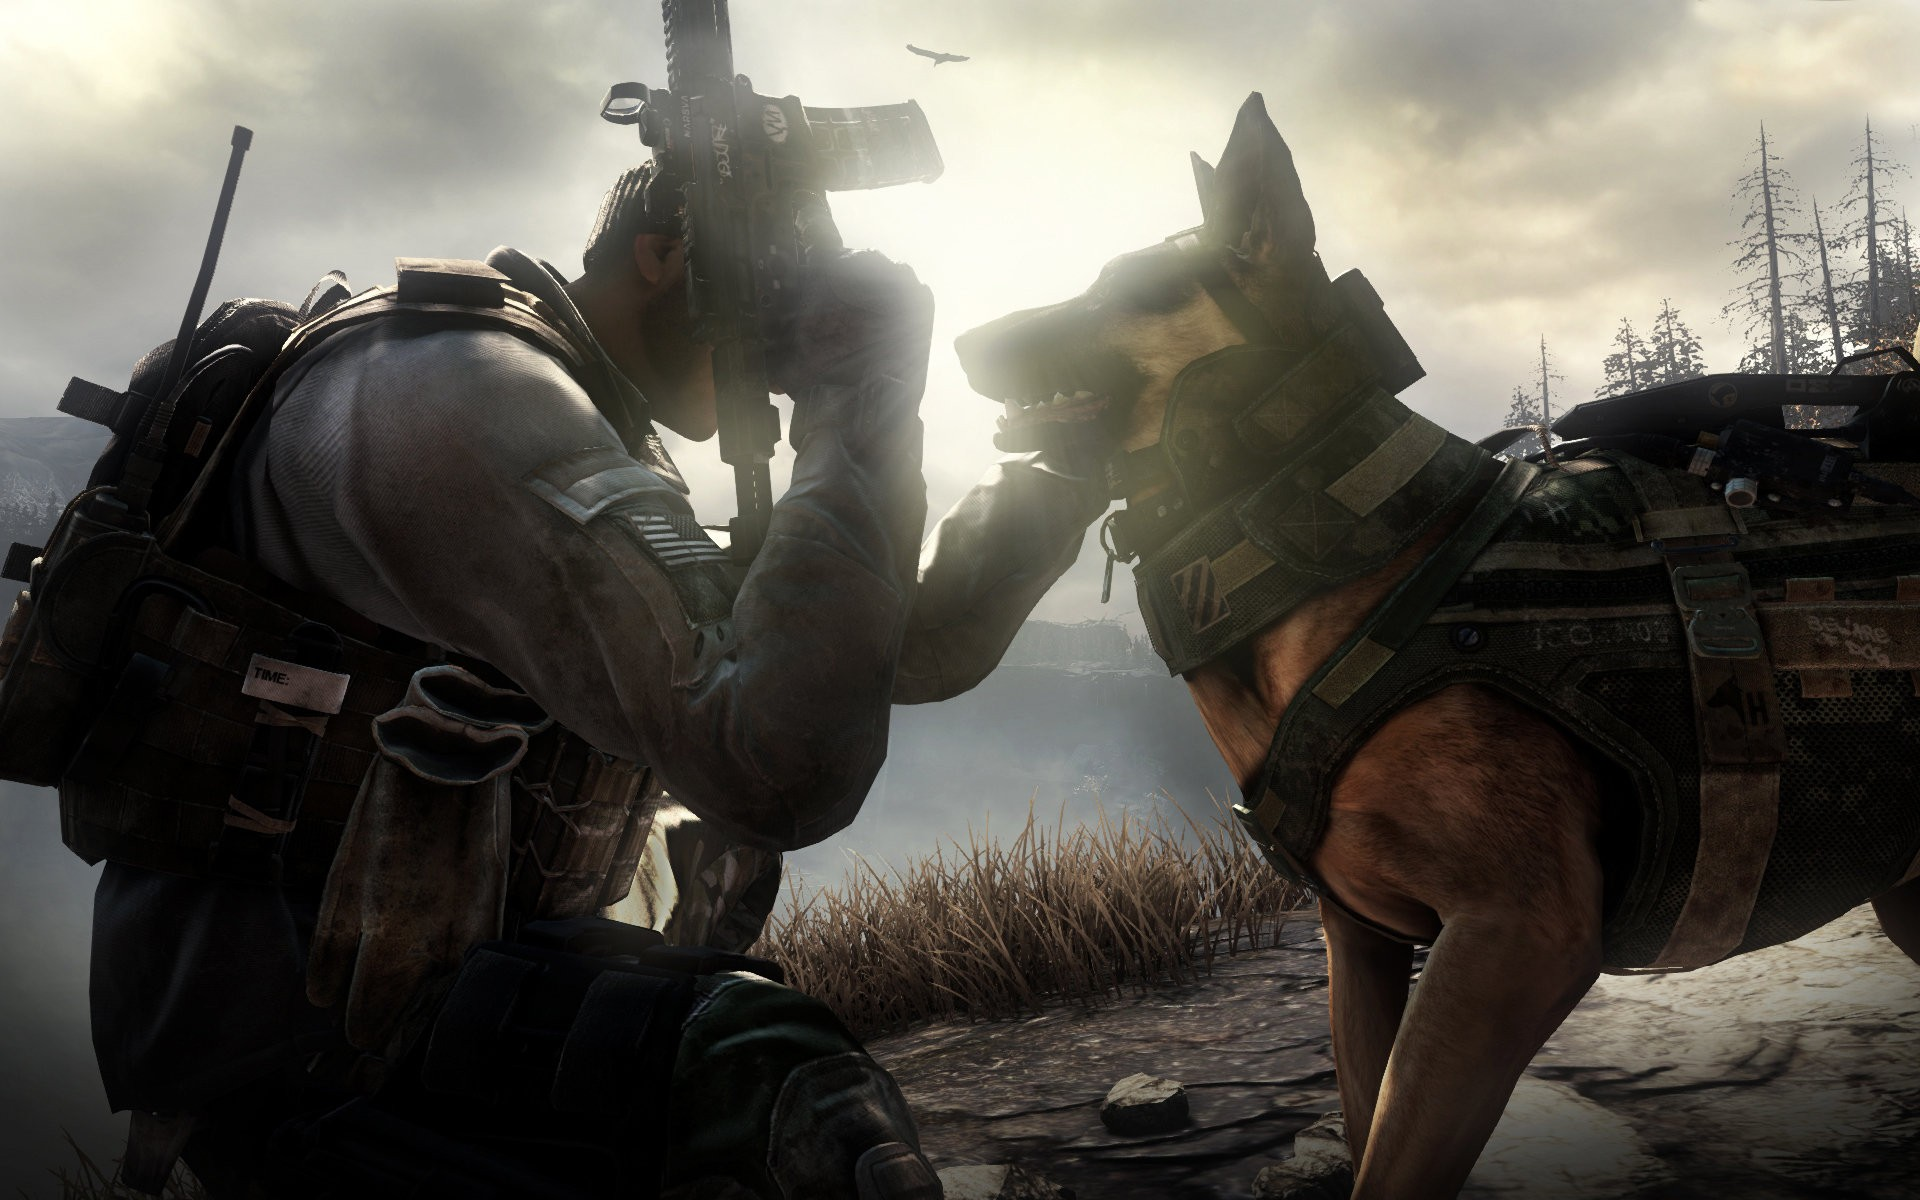 Call of Duty: Ghosts' has a new dog but old tricks - pennlive.com